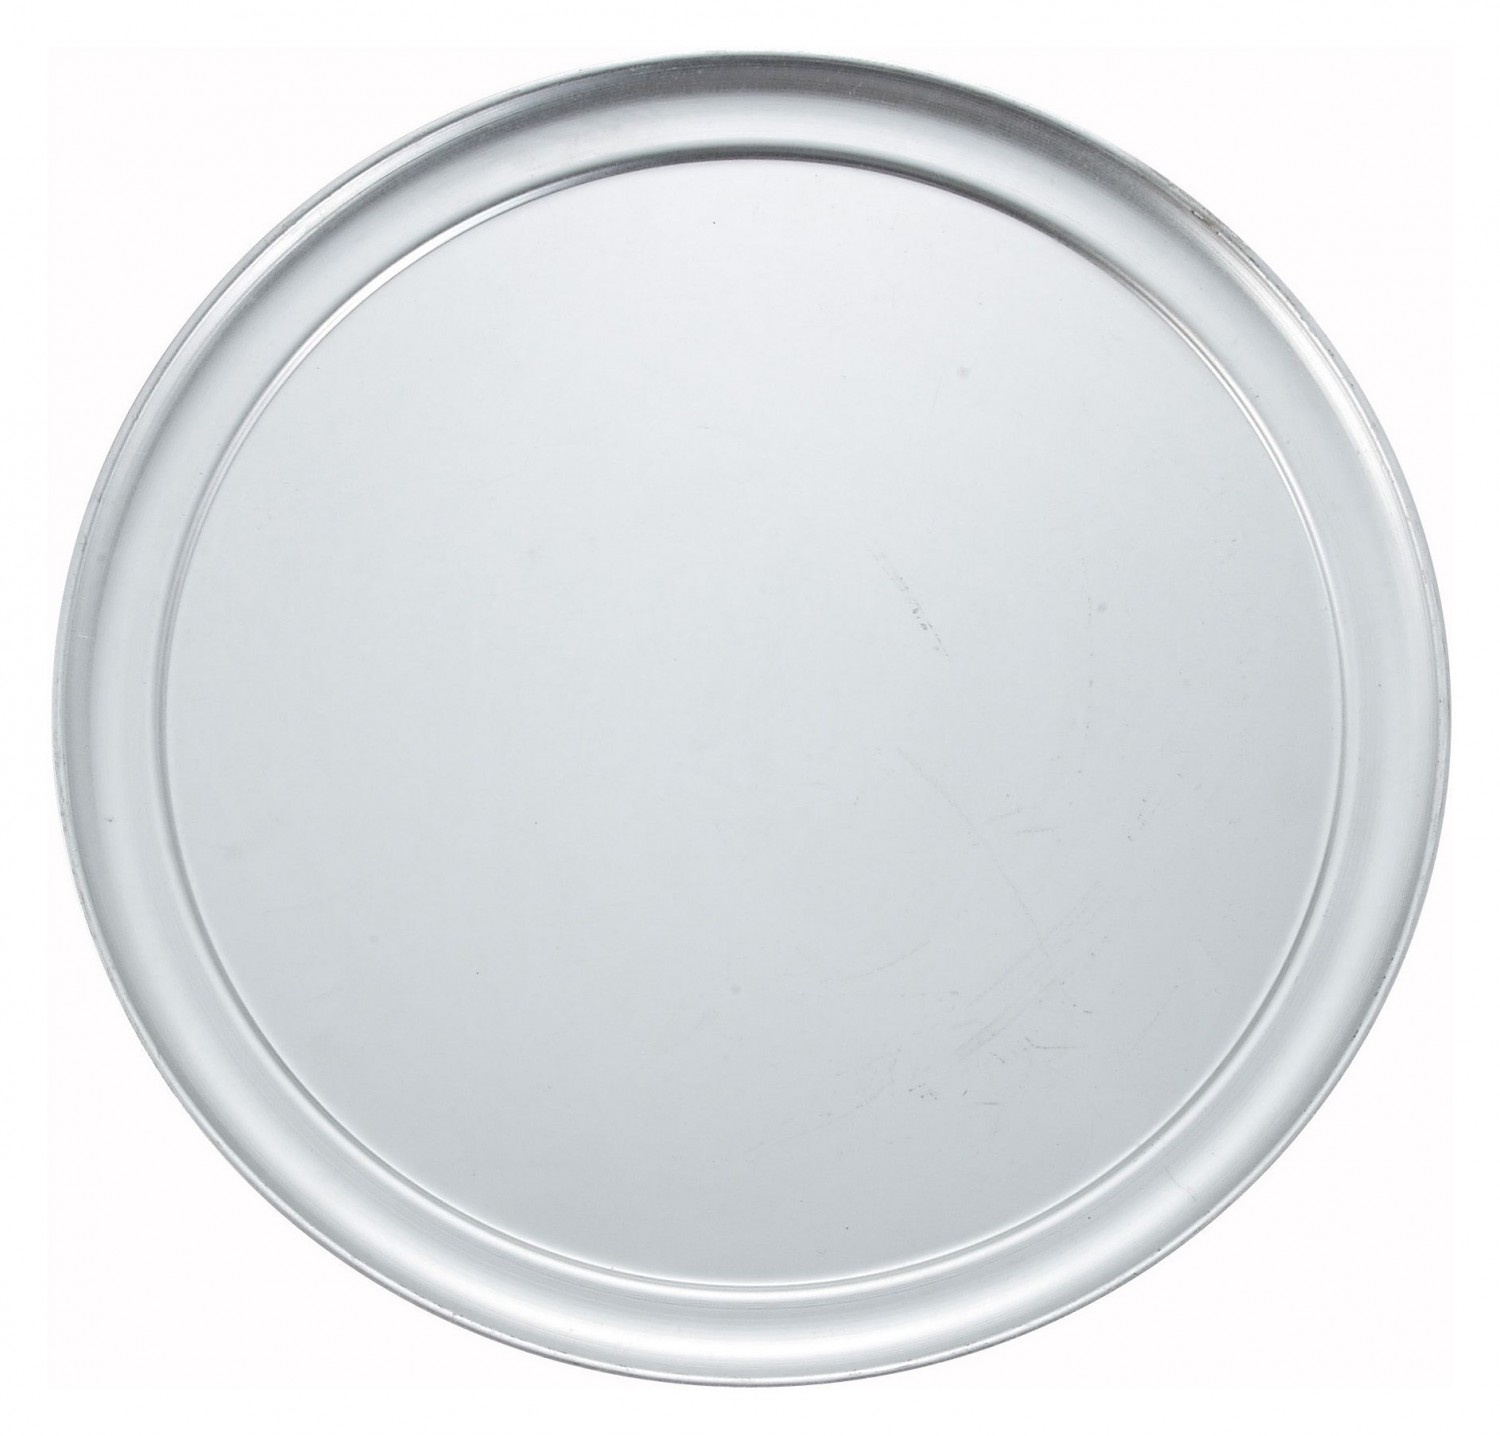 "Winco APZT-13 13"" Aluminum Wide Rim Pizza Pan"